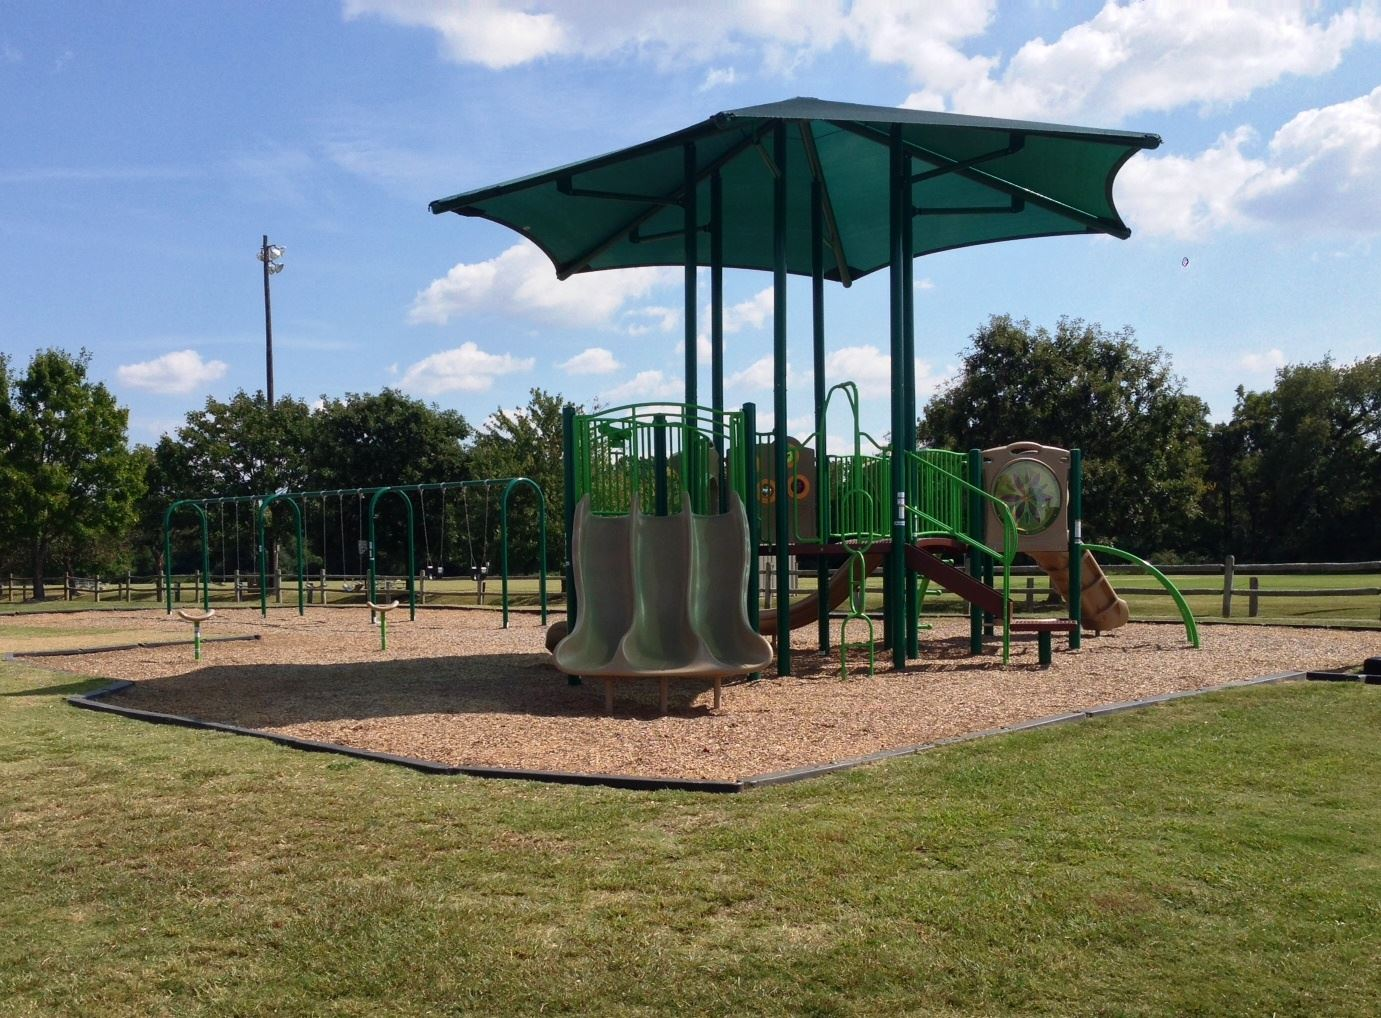 Phillips Park Image of Playground in grass with trees in balcground